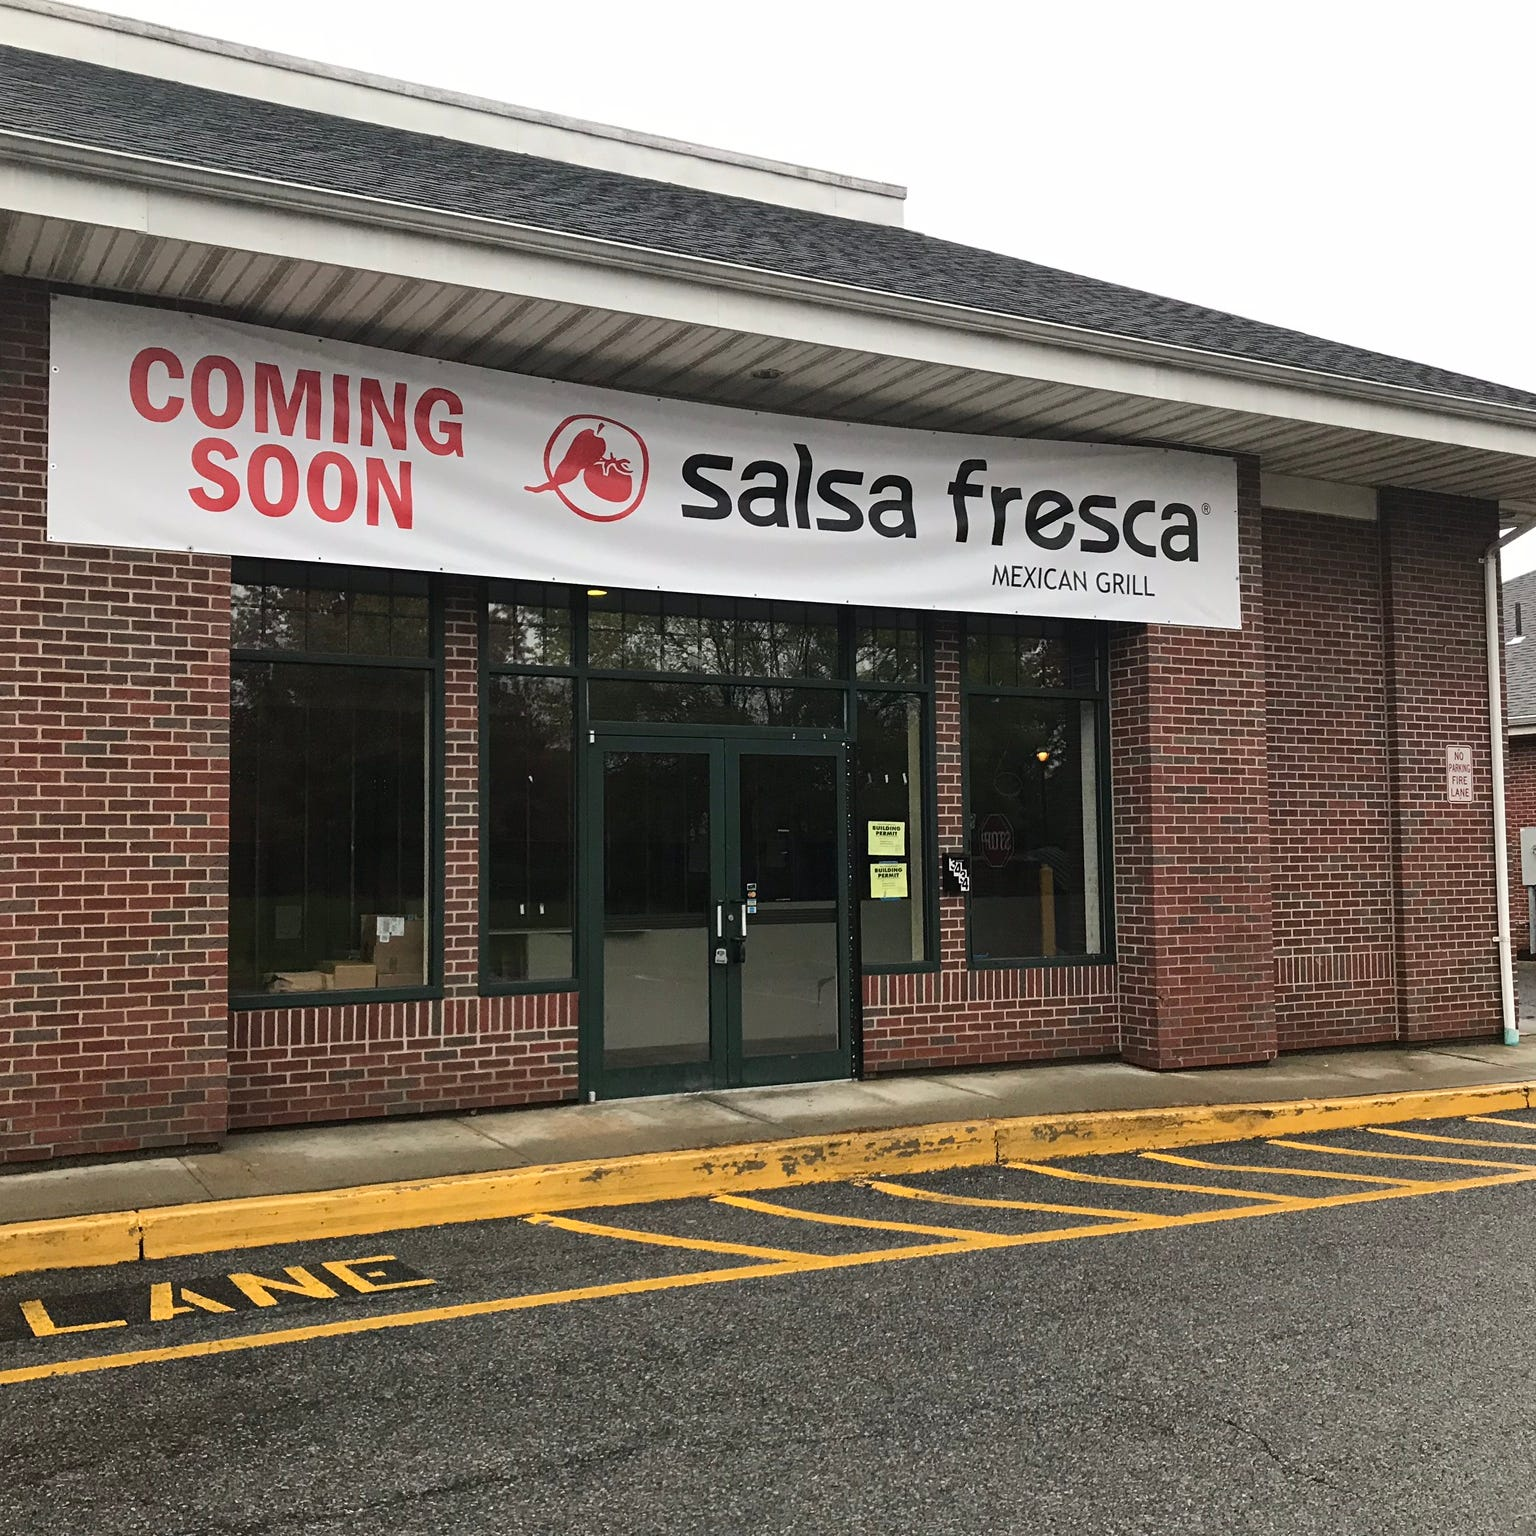 Salsa Fresca to open Tex-Mex restaurant in Poughkeepsie this year